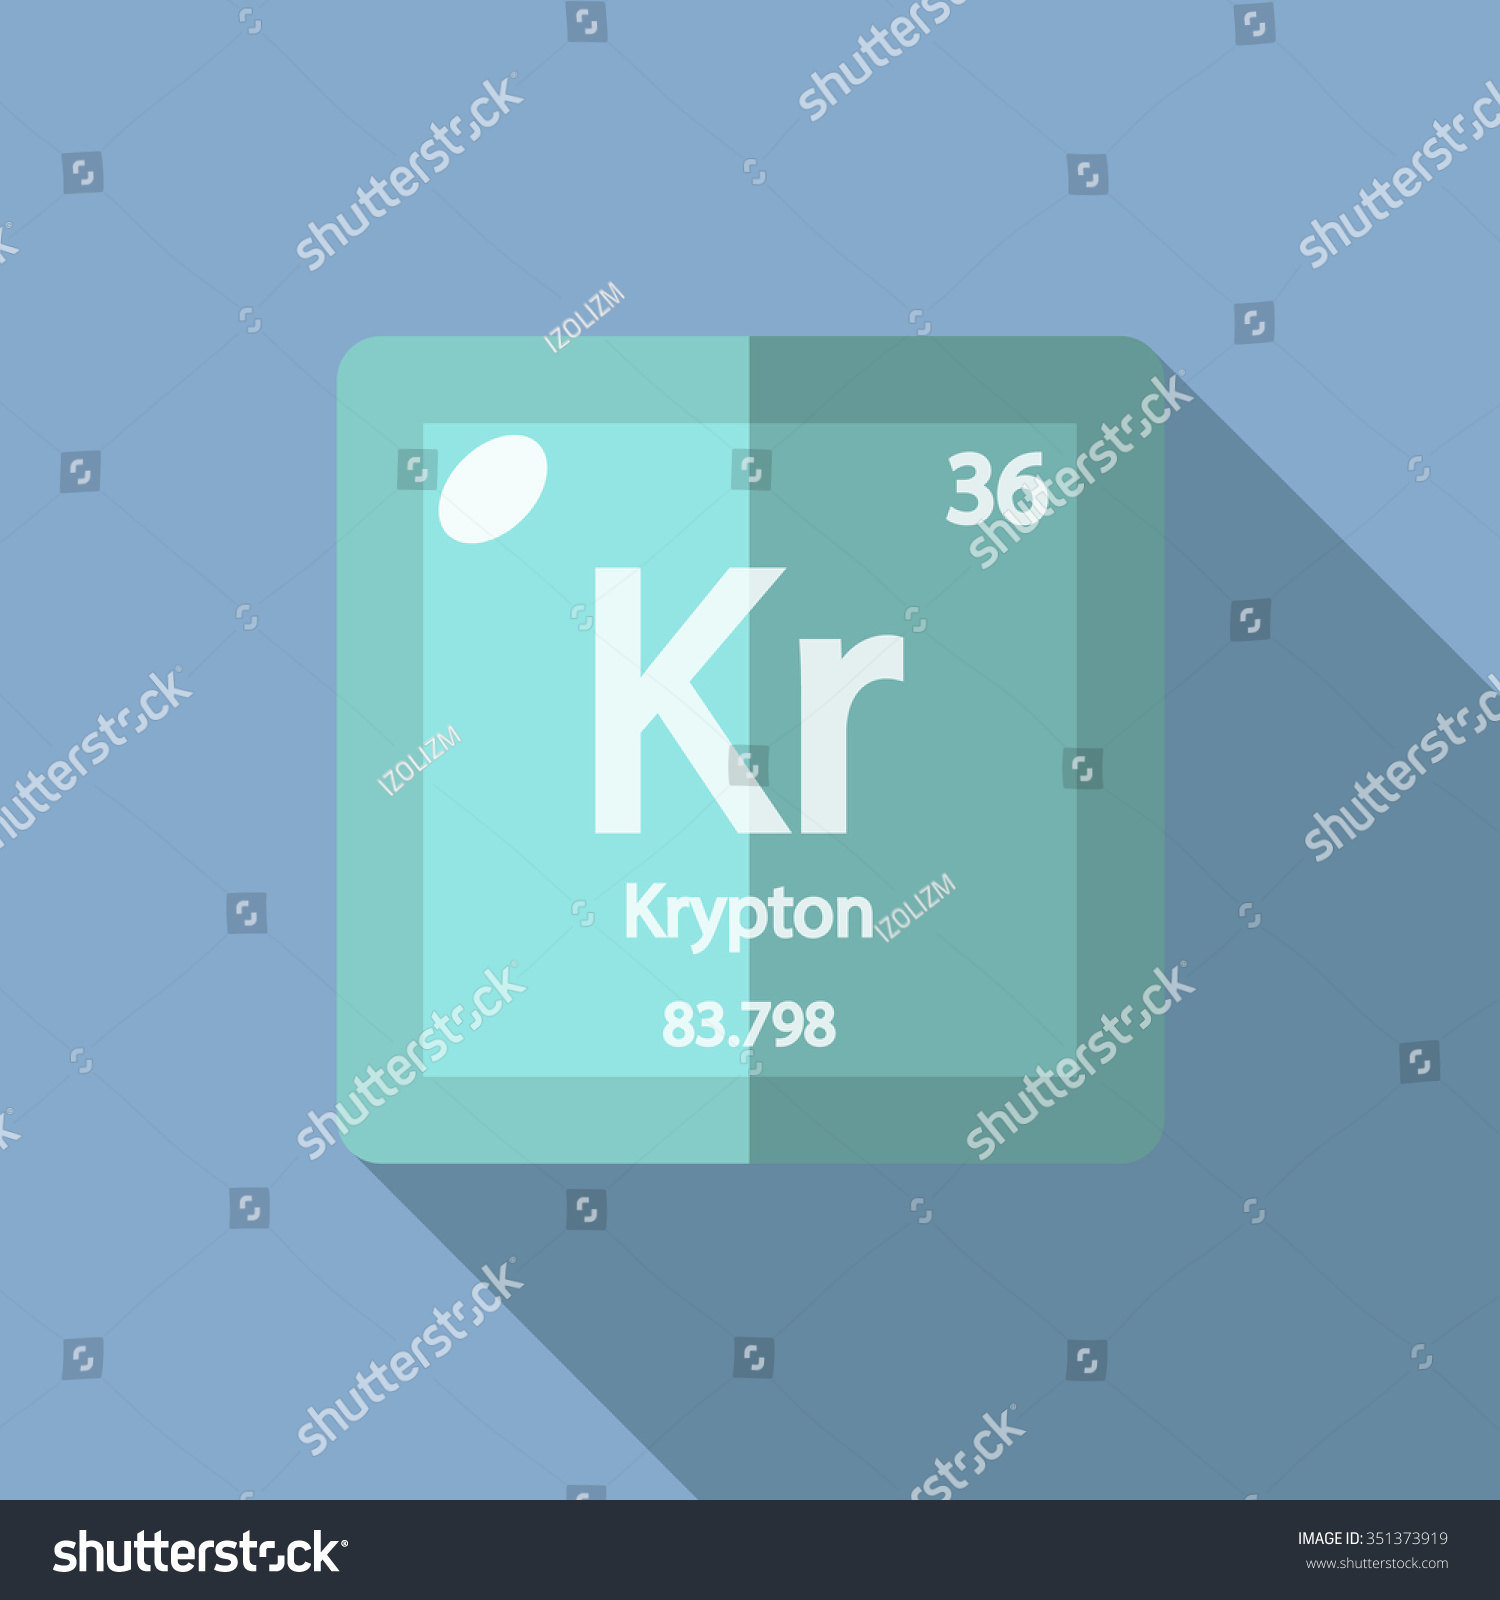 Chemical element krypton flat design style stock vector 351373919 chemical element krypton flat design style modern vector illustration buycottarizona